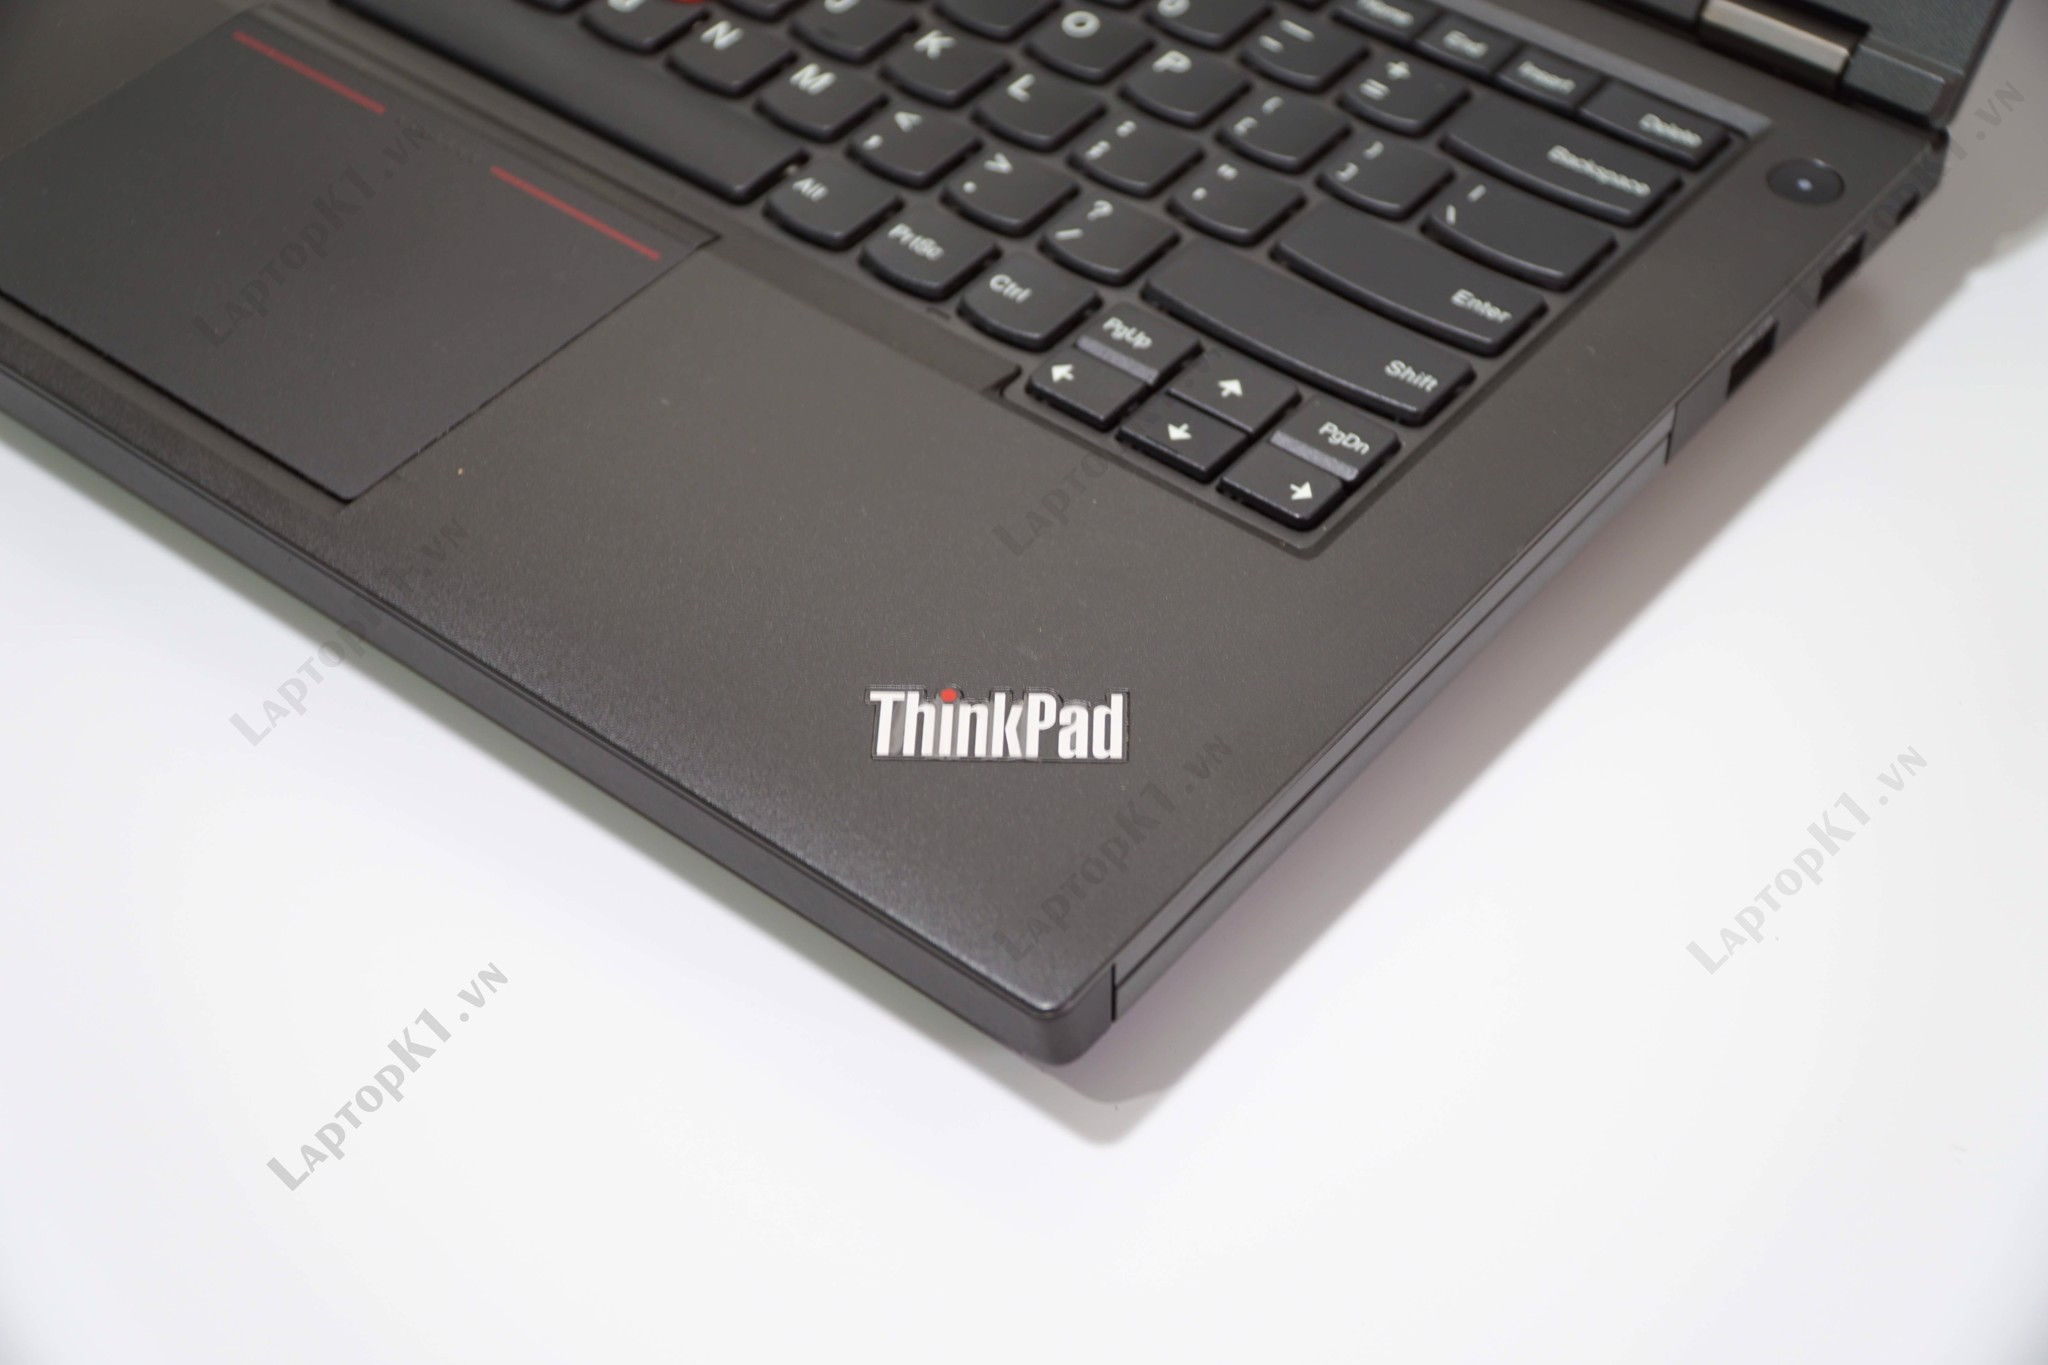 Laptop Lenovo Thinkpad T440p (Core i5 4300M, RAM 4GB, SSD 128GB, Intel HD Graphics 4400, 14.0 inch HD)